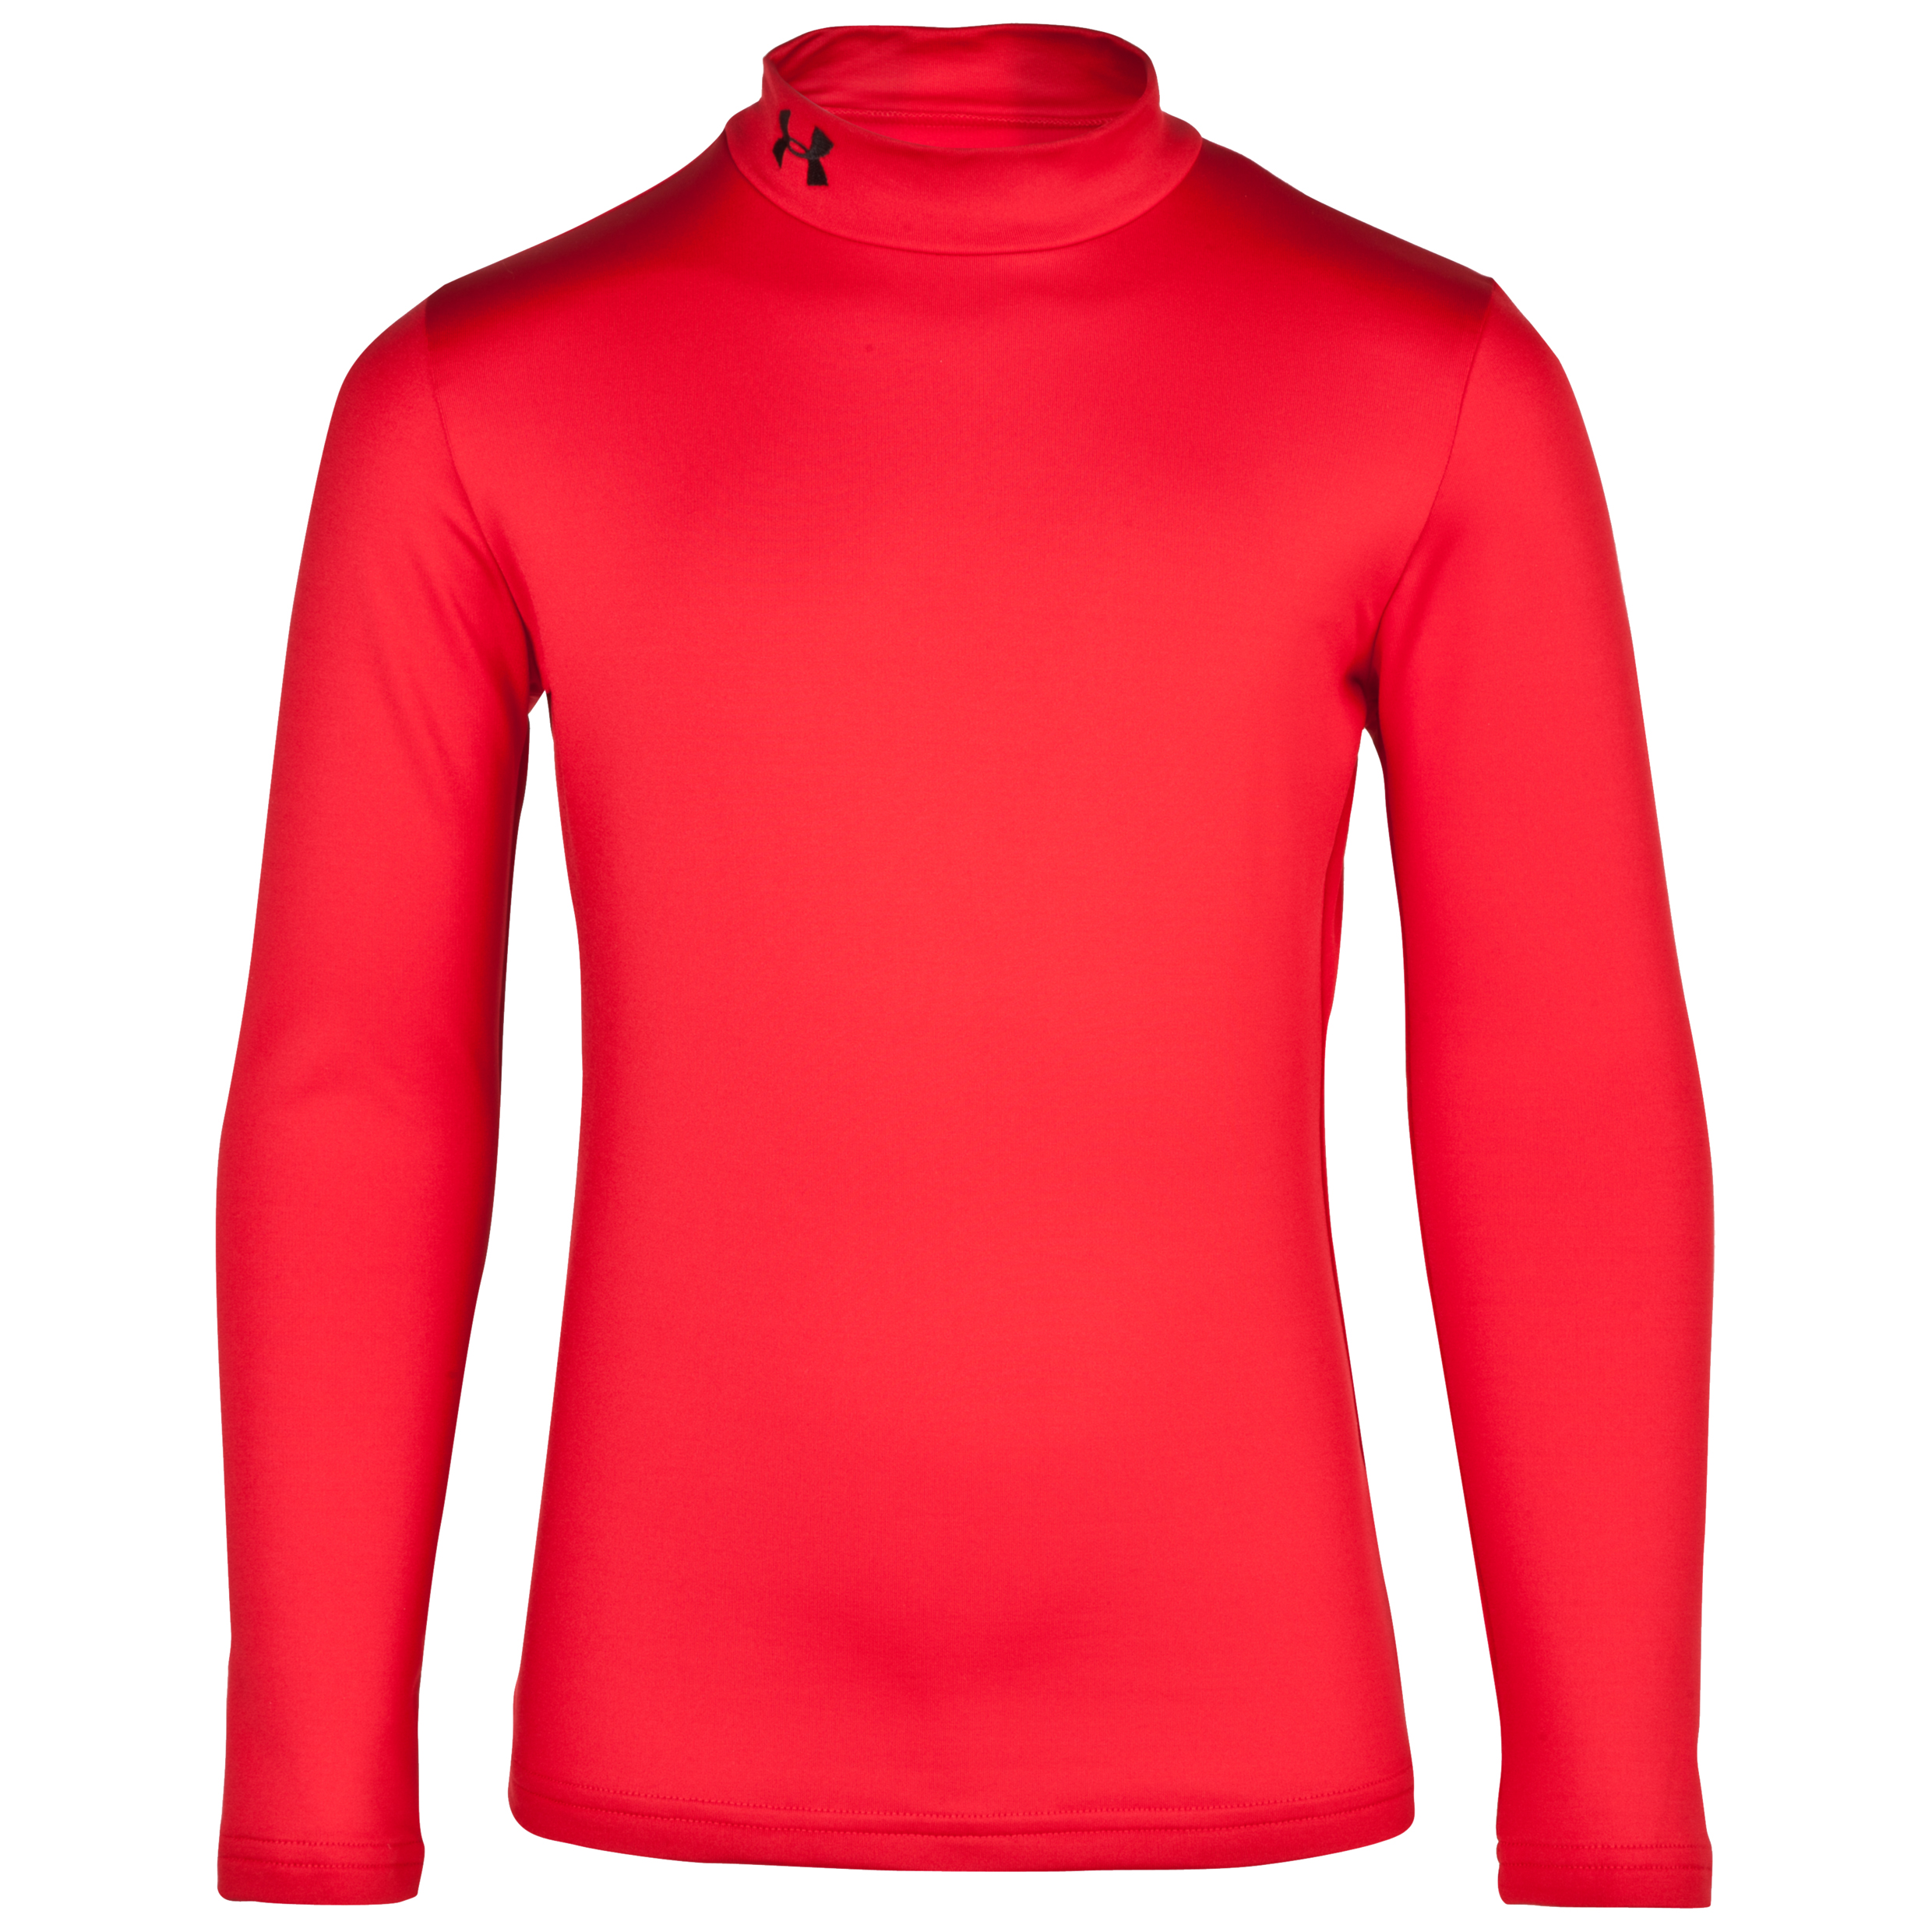 Under Armour Evo Coldgear Mock Base Layer Top - Long Sleeve - Kids Red